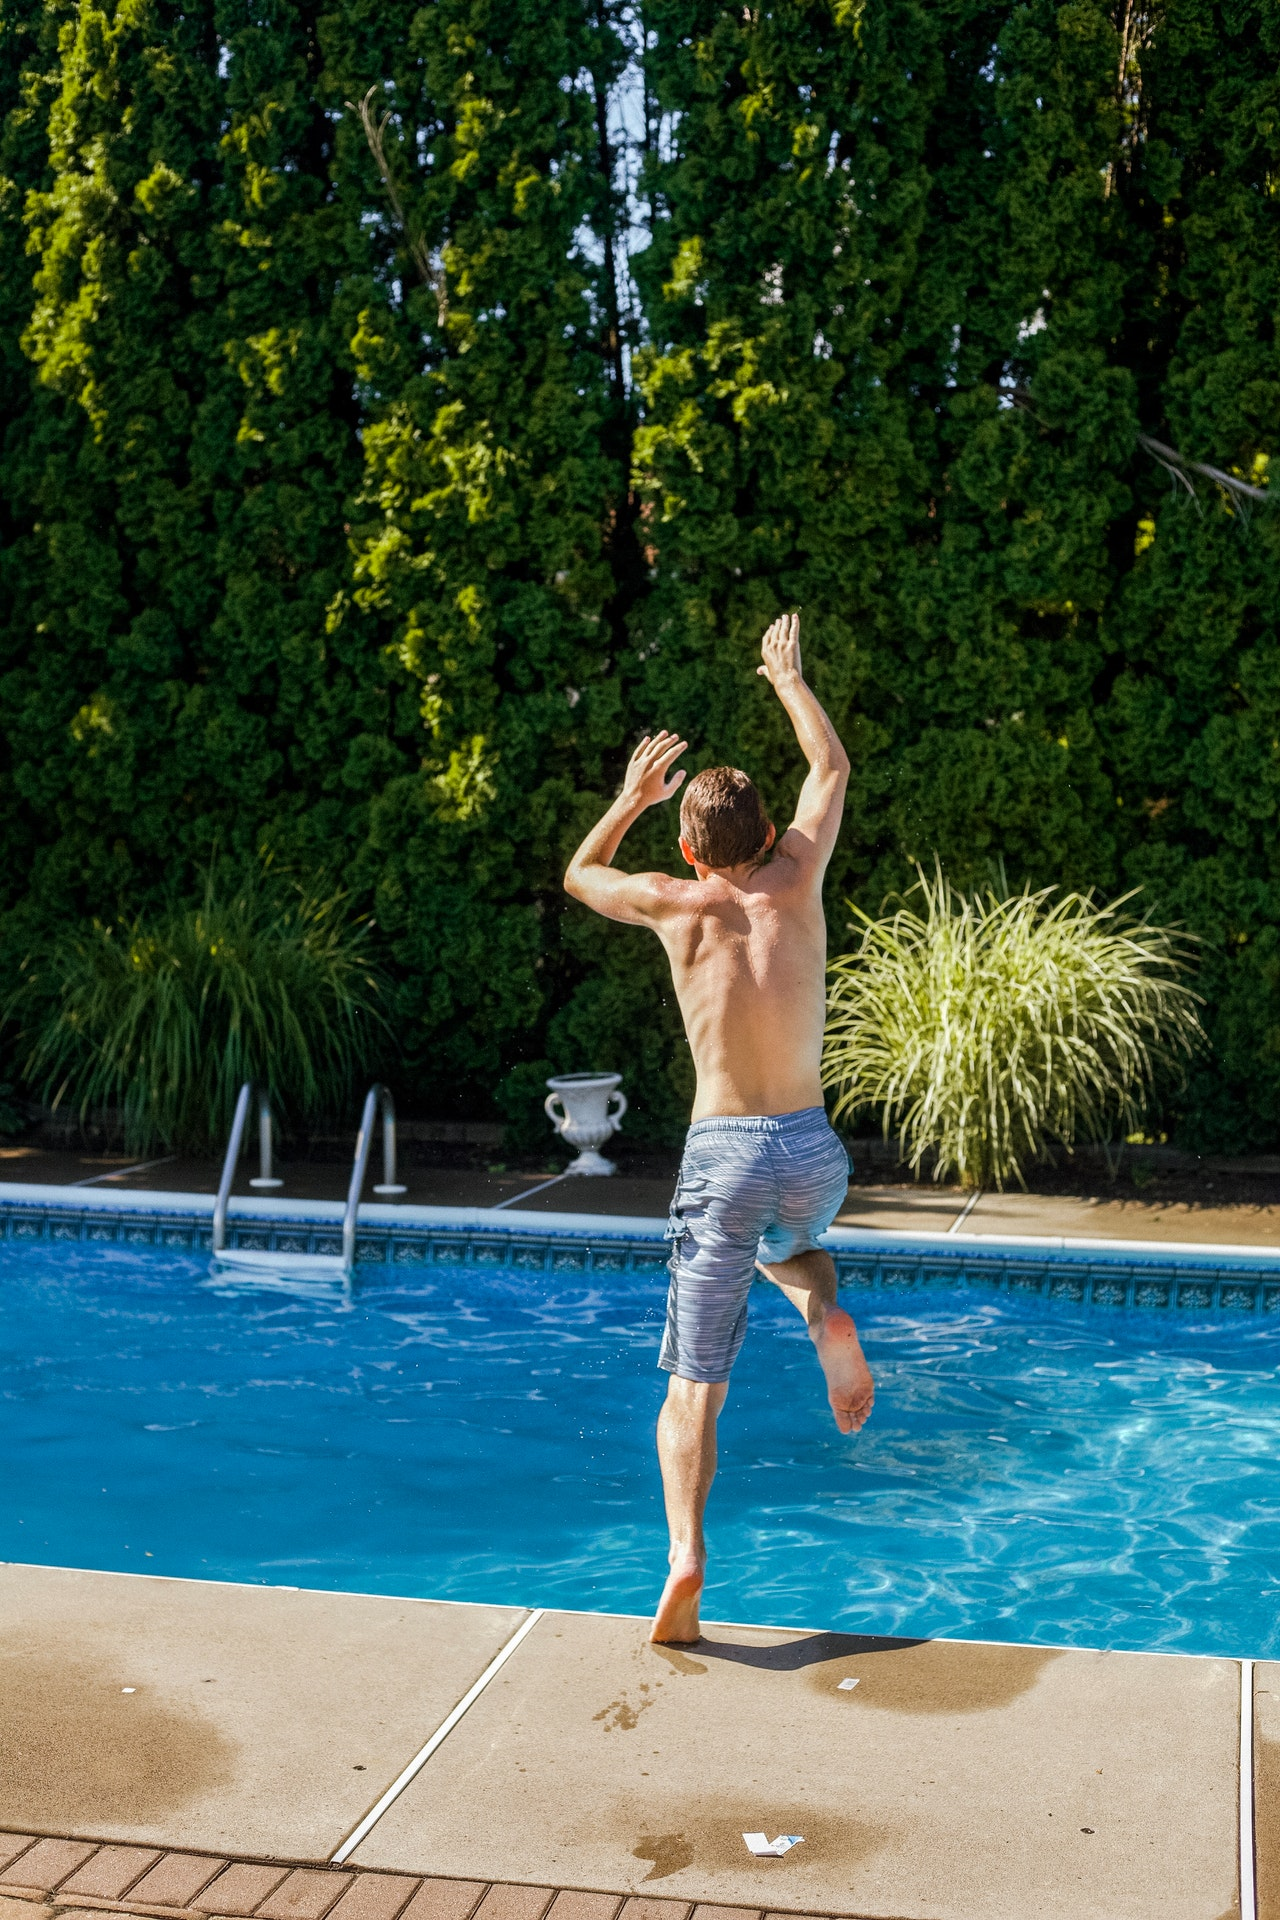 Safe Summer Splashes: Pool Safety For You and Your Family